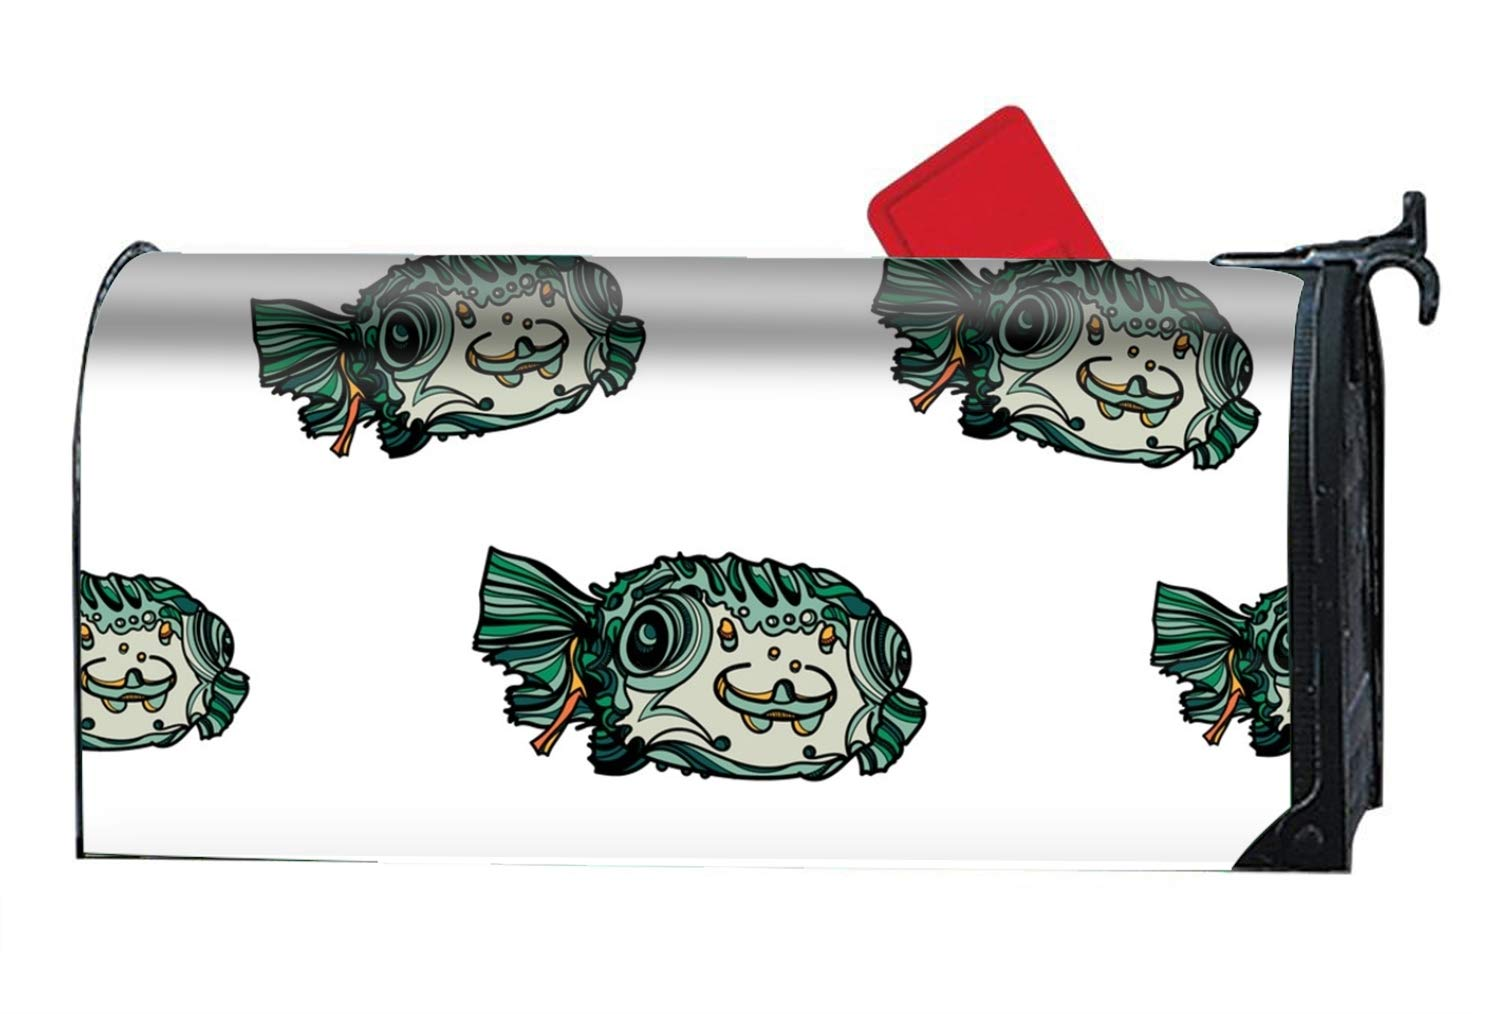 buxten Unique Mailbox Makeover Green Fish Lightweight Attractive Mailbox Covers Garden Magnetic